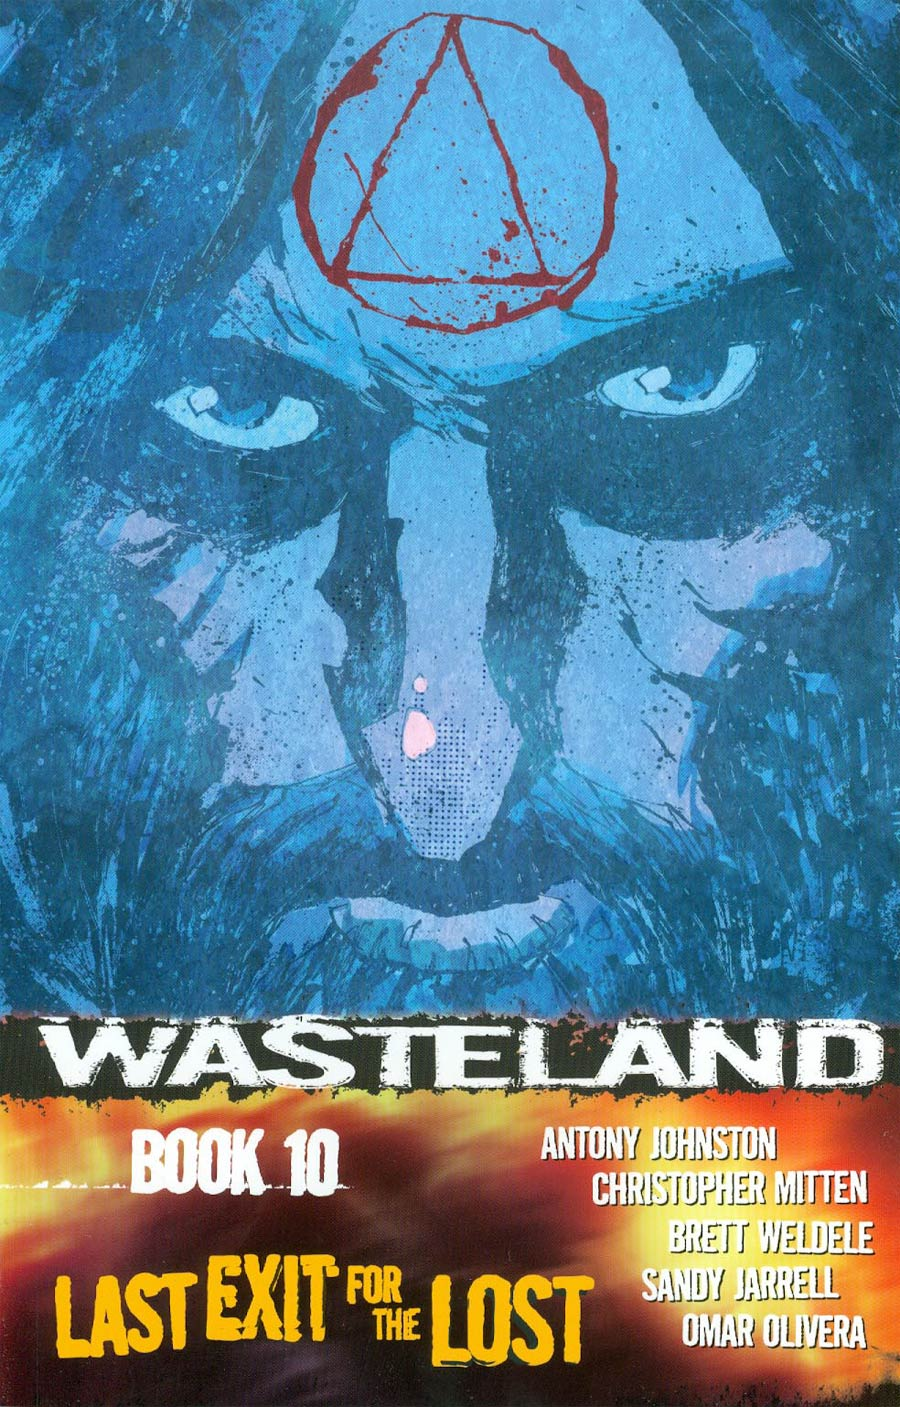 Wasteland Book 10 Last Exit For The Lost TP